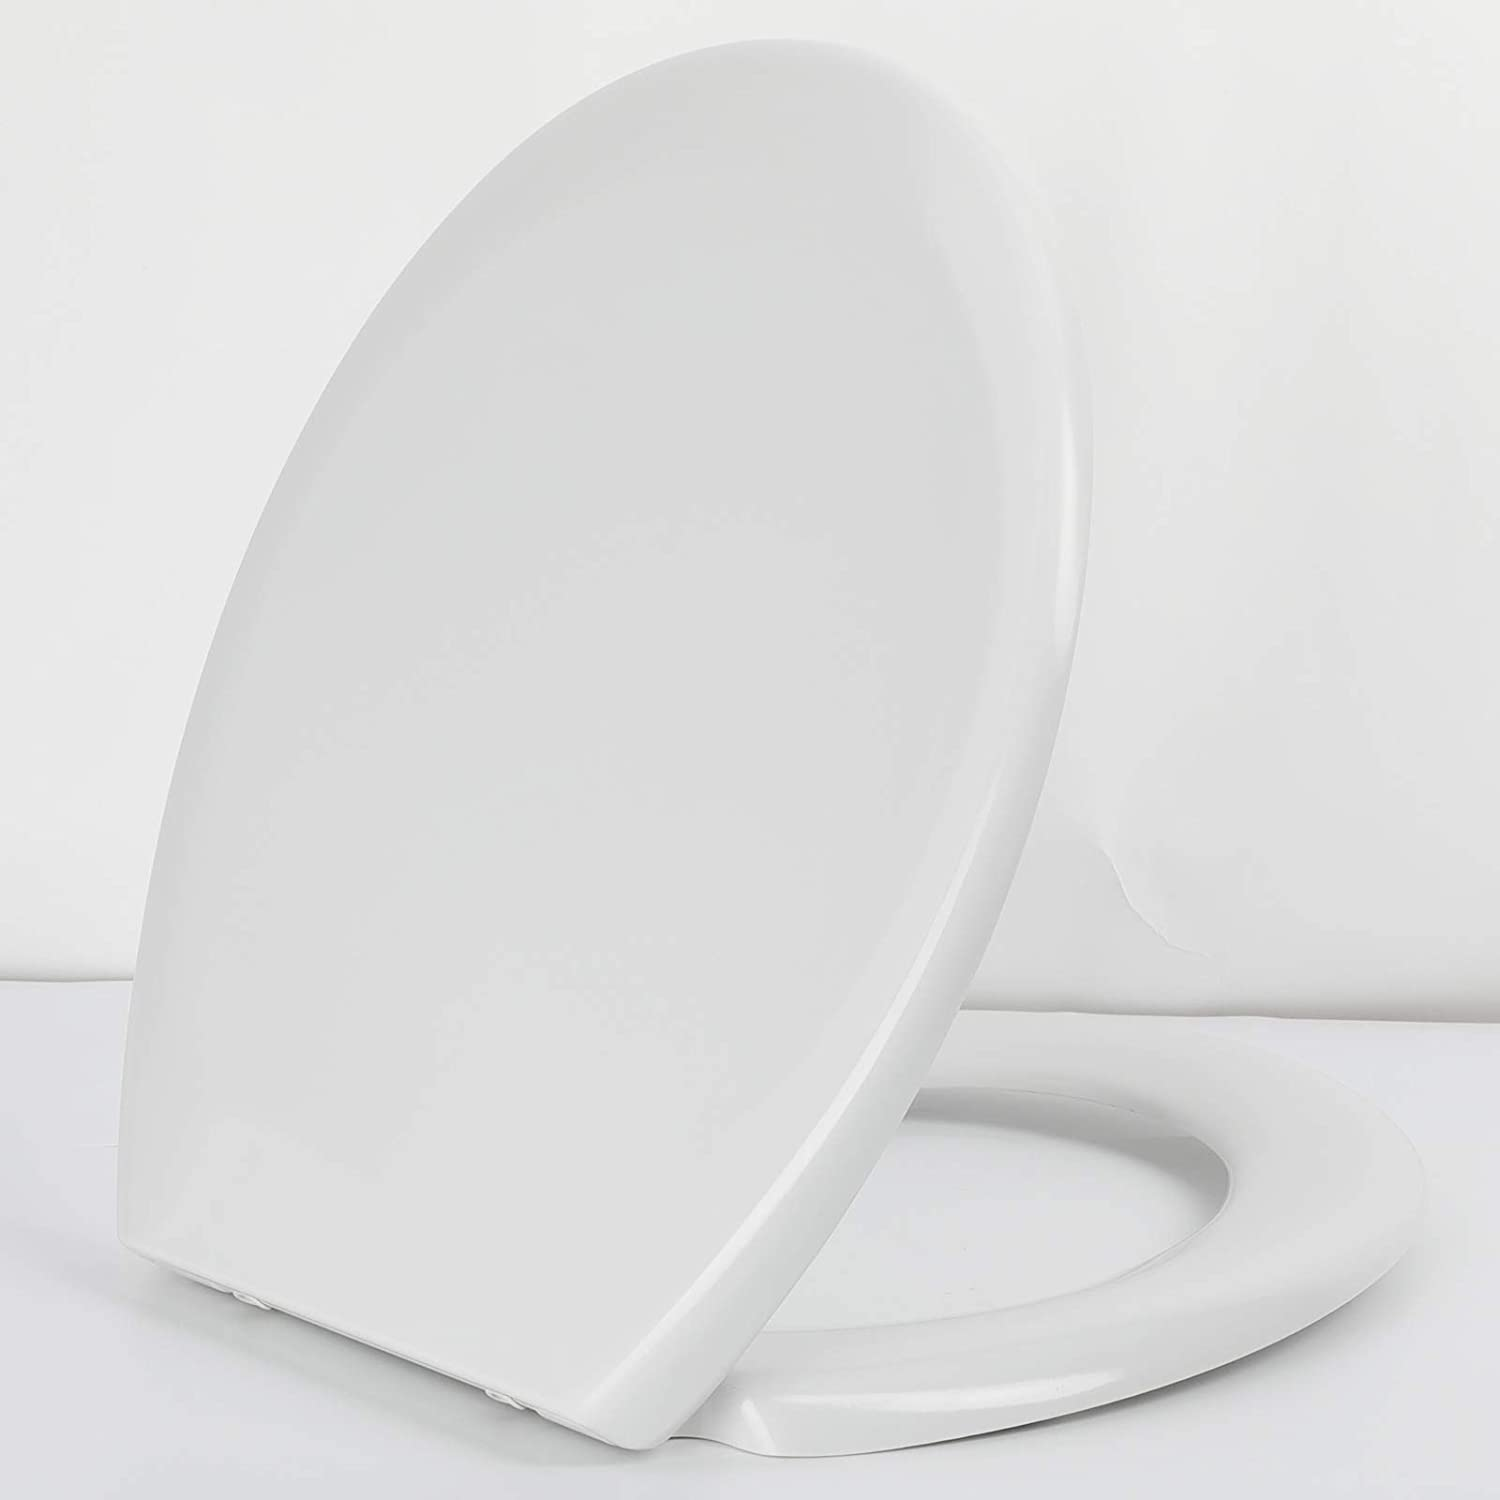 Toilet Seat, Soft Close Toilet Seats White with Quick Release for Easy Clean, Top Fixing, Stay Tight Toilet Lid Oval Shape, Heavy Duty Urea-Formaldehyde Anti-Bacterial Material with Stainless Hinges